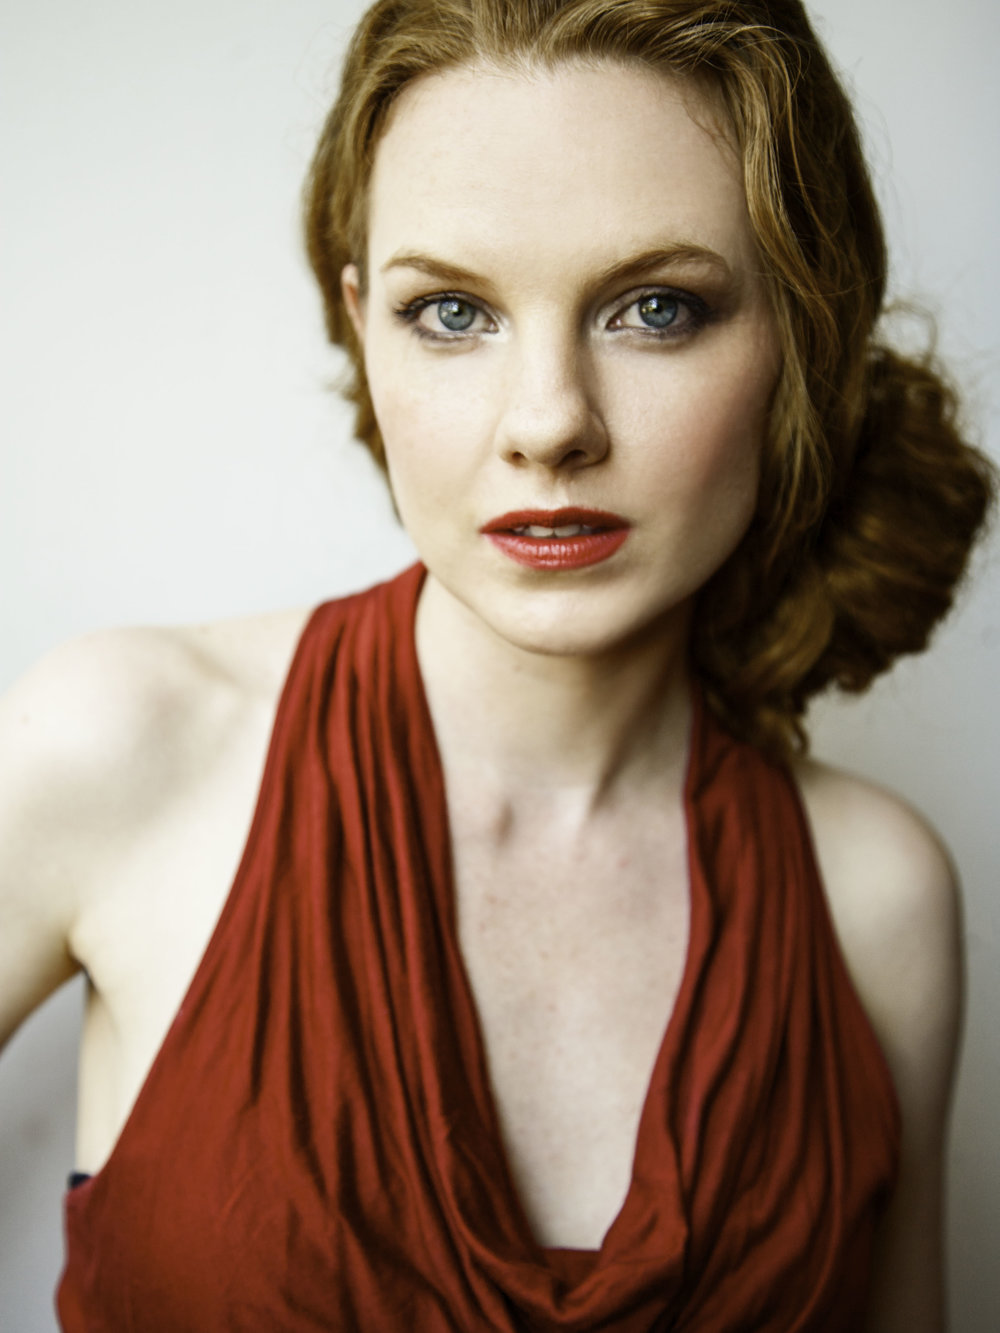 """Emily Klassen Donna Elvira Praised for her expressive singing and powerful stage presence, Canadian soprano Emily Klassen is earning accolades at home and abroad. In July 2016 Emily performed a concert tour across Northern Italy with the assistance of the Canada Council for the Arts. There, she appeared as a guest artist in nine internationally renowned music festivals with acclaimed Italian organist Luciano Zecca. Her intelligent interpretation of 17th & 18th Century music has led to solo engagements with many Baroque ensembles including the Venetia Antiqua (Venice, IT), Gallery Players of Niagara (Niagara, CA), the Toronto Continuo Collective (Toronto, CA), the Cardinal Consort of Viols (Toronto, CA), and Capella Intima, (Hamilton, CA).  Equally at home on the opera stage, Emily has performed such roles as Musetta in Puccini's La bohèmewith Pellegrini Opera (Ottawa, CA), Pallade in Gluck's Paride ed Elenawith Essential Opera (Toronto, CA), Dafne in Cavalli'sGli Amori d'Apollo e di Dafnewith The Venice Opera Project (Venice, IT), Adina in Donizetti's L'elisir d'amorewith Pellegrini Opera (Ottawa, CA), Dafne in Da Gagliano's La Dafnewith Capella Intima (Toronto, CA), Amor/Minerva in Monteverdi's Il ritorno d'Ulisse in patriawith Accademia Europea Dell'Opera (Amsterdam, NL), Casilda in Gilbert & Sullivan's The Gondolierswith Toronto Operetta Theatre (Toronto, CA) and Queen of the Night in Mozart's The Magic Flutewith Summer Opera Lyric Theatre (Toronto, CA).  Emily gained international attention for her performance on the critically acclaimed NBC series """"Hannibal"""" where she performed an excerpt from Handel's """"Piangerò la sorte mia."""" As an actor, Emily also appeared on the CTV series """"Flashpoint,"""" the CBC series, """"Murdoch Mysteries"""" and the Lifetime Network series """"Angela's Eyes."""""""""""